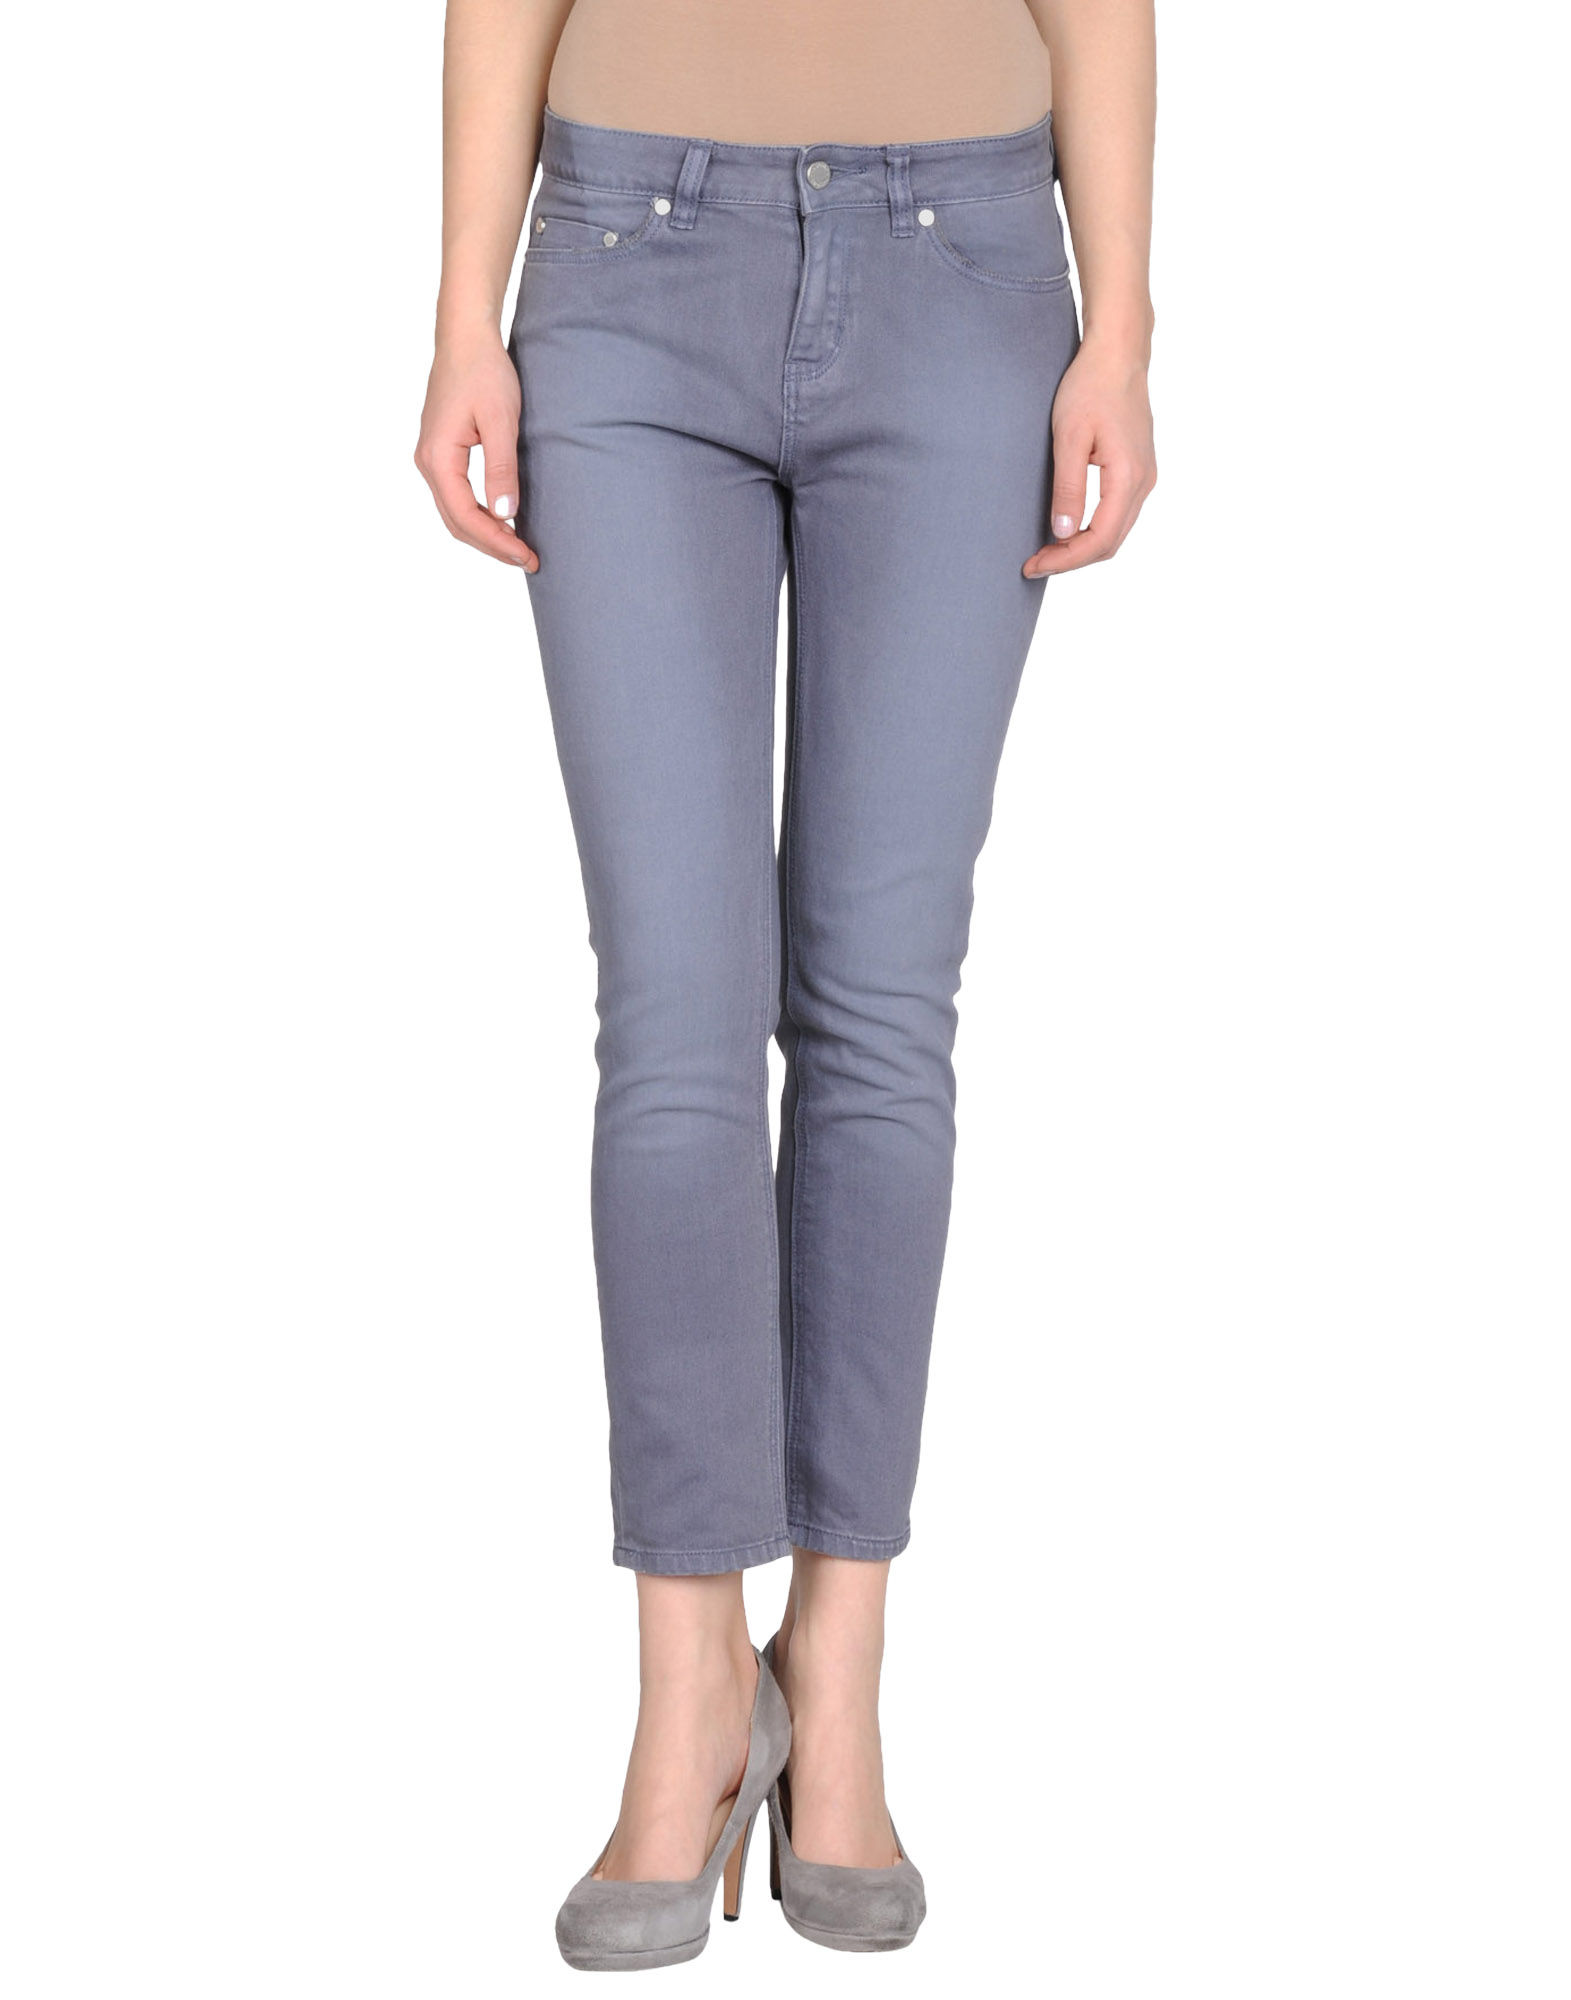 0051 INSIGHT Jeans